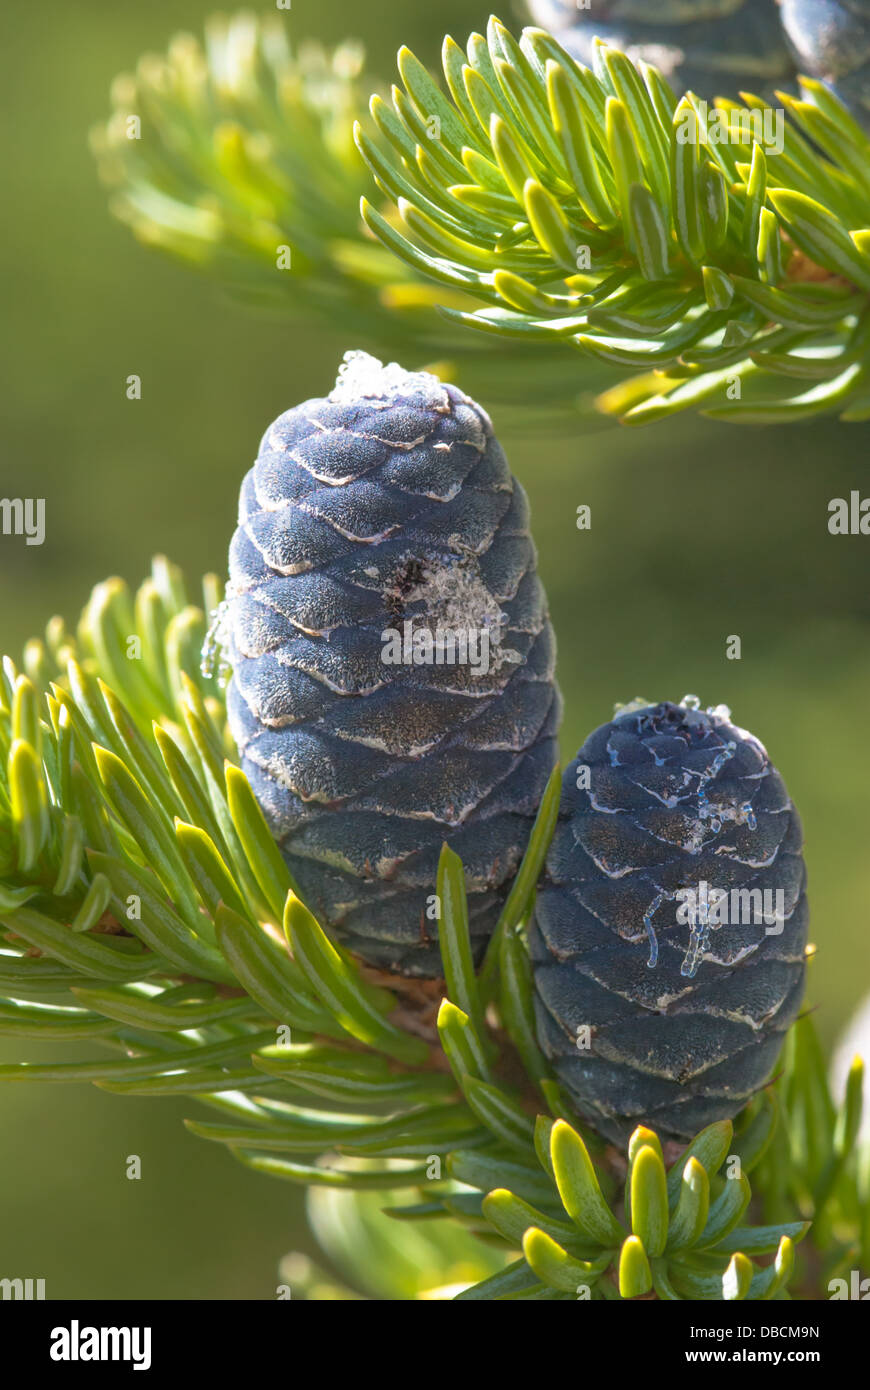 blue-alpine-fir-cones-abies-lasiocarpa-w